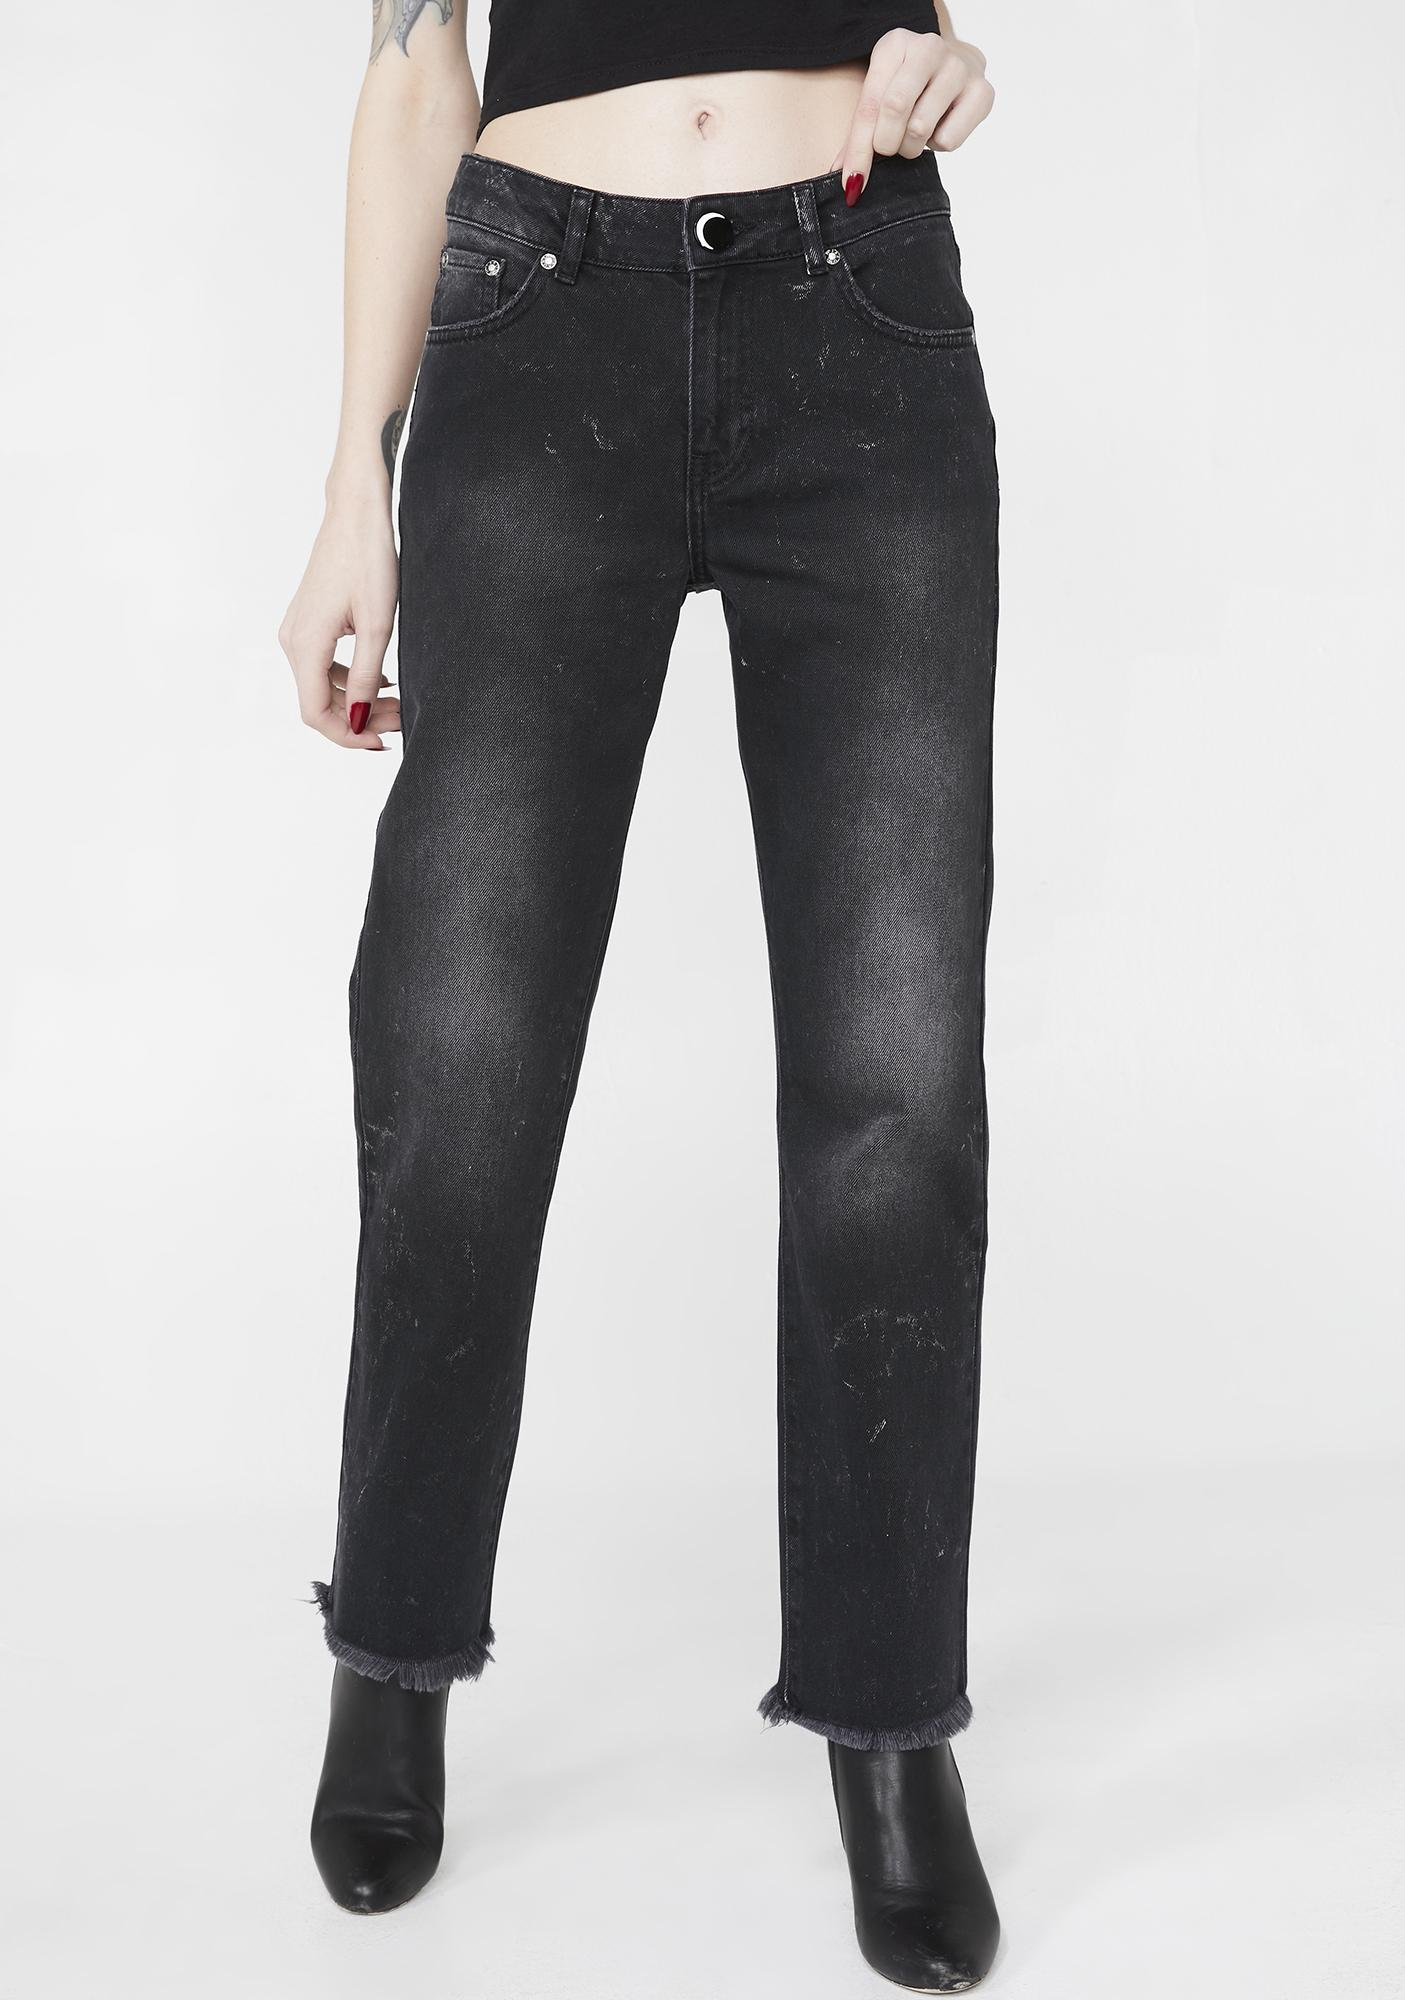 NGHTBRD Voodoo Child Jeans